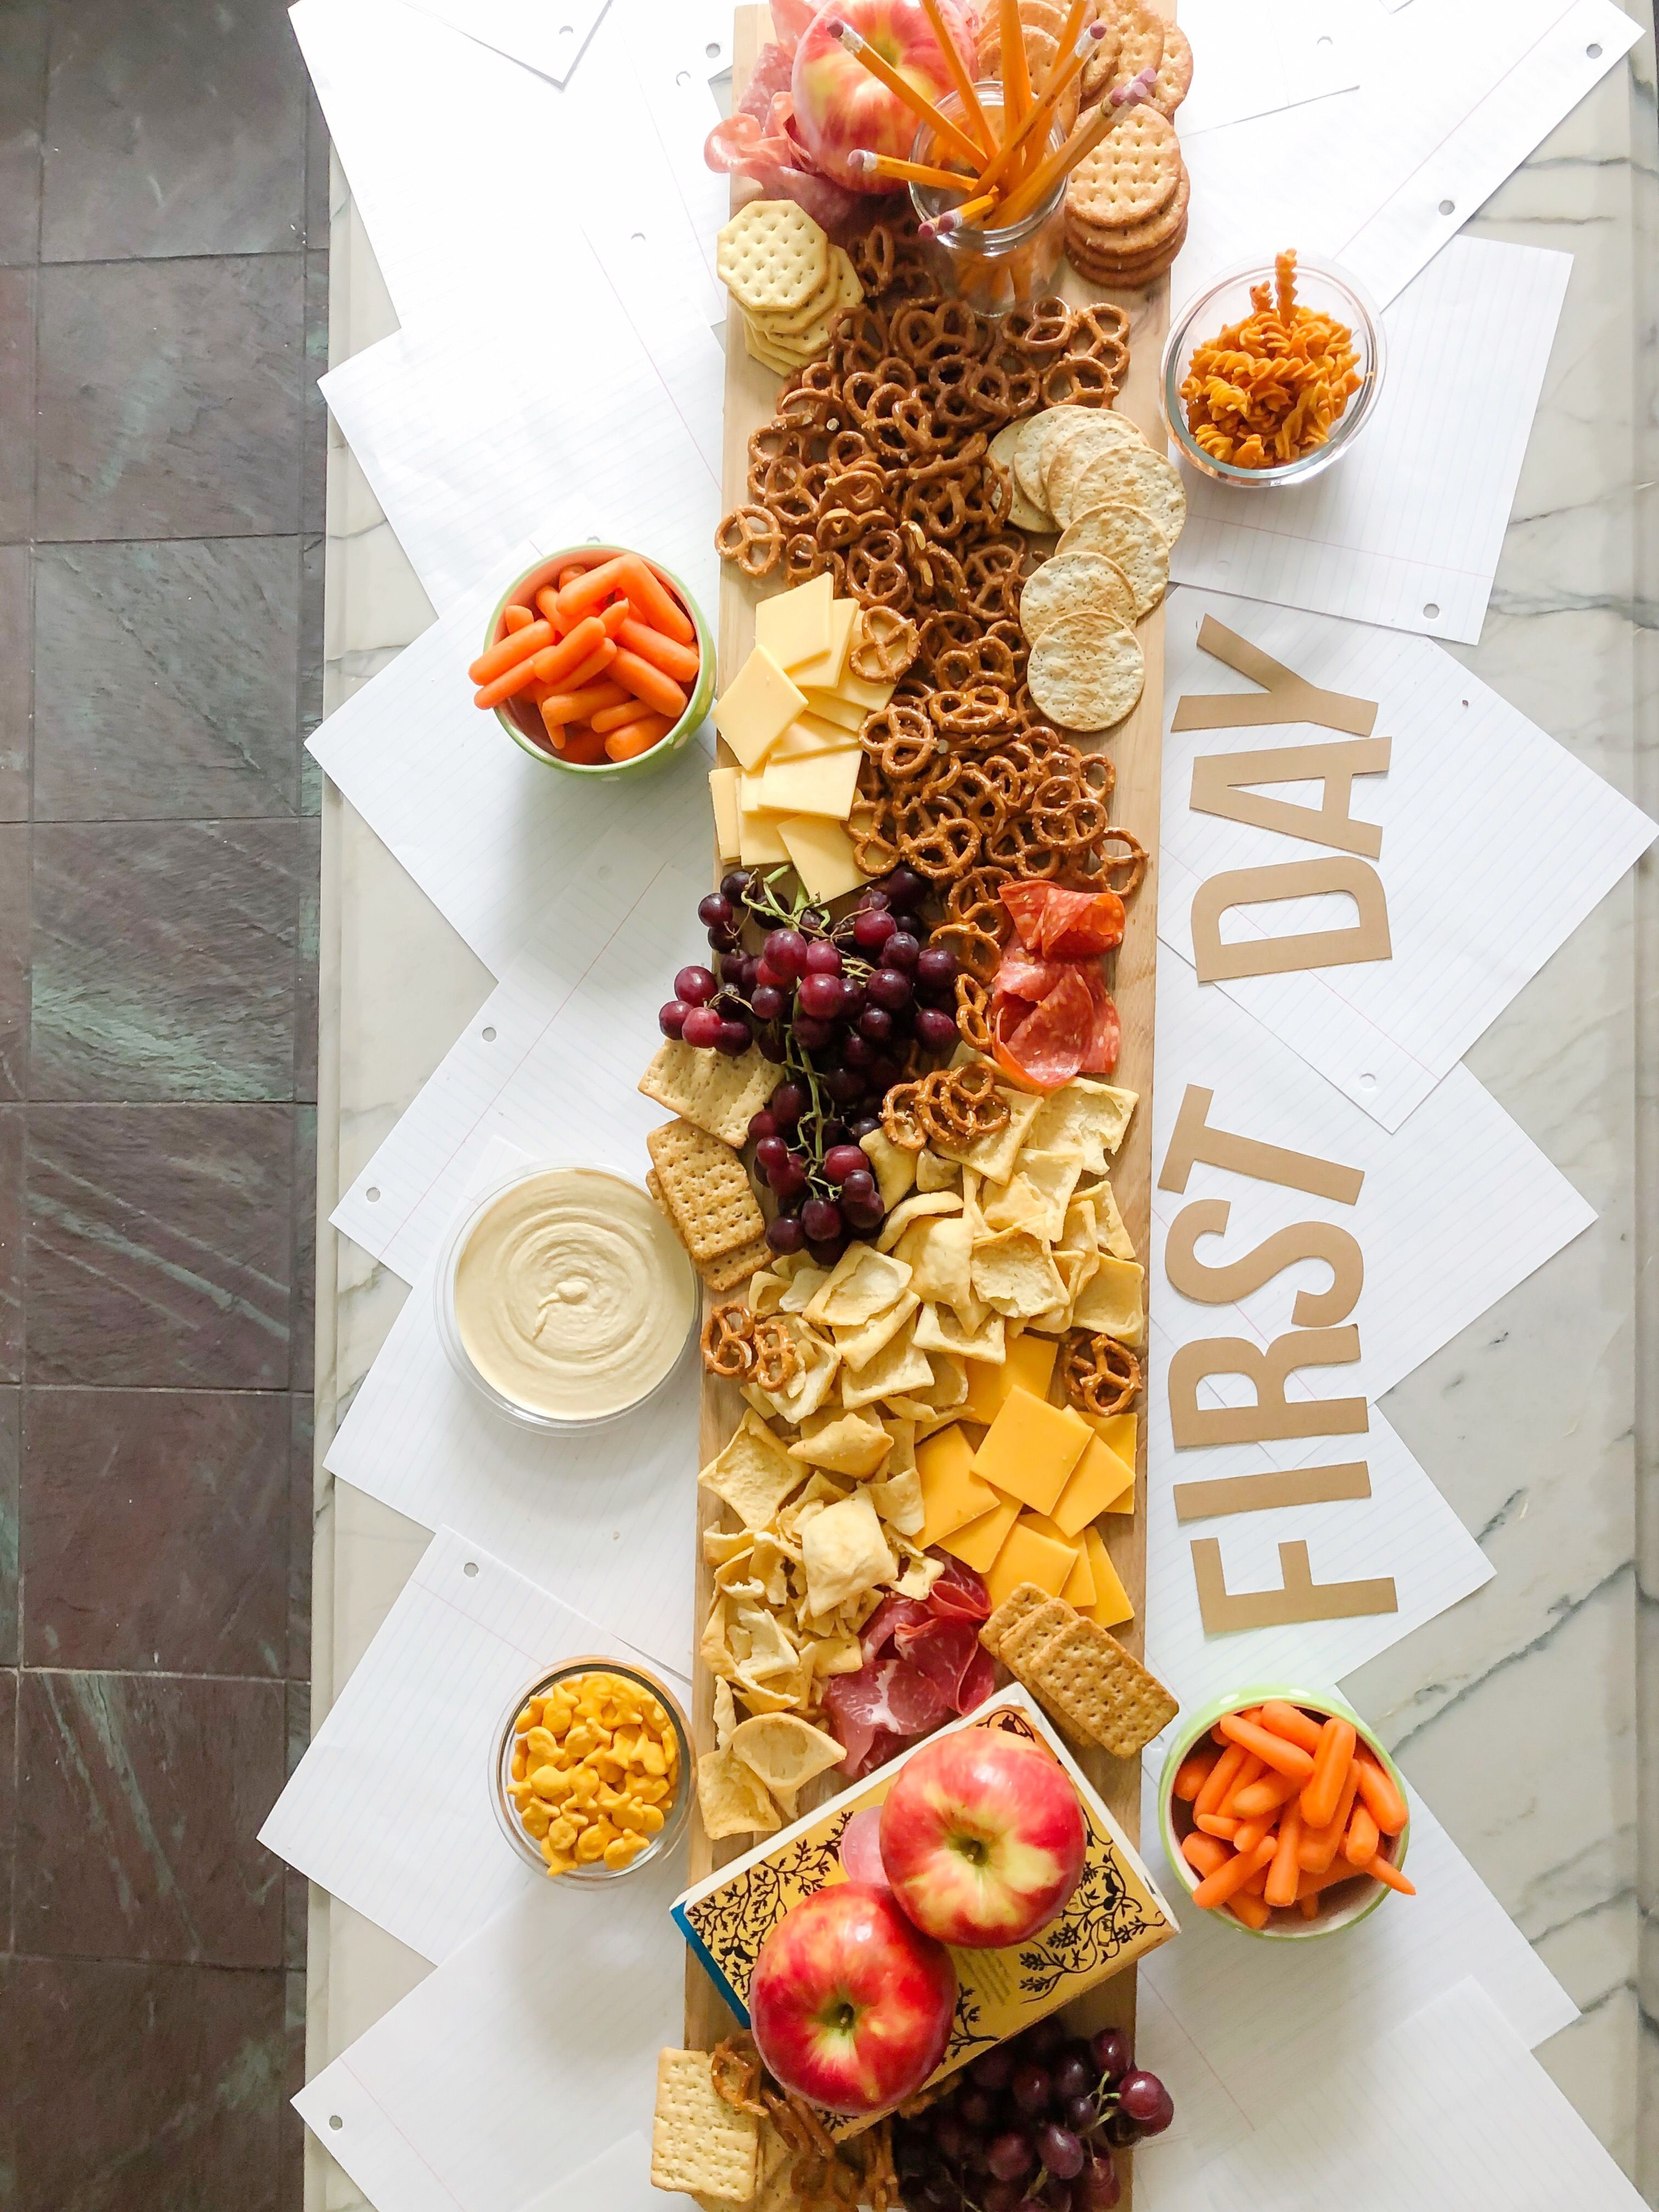 Entertaining simple charcuterie board in 4 easy steps